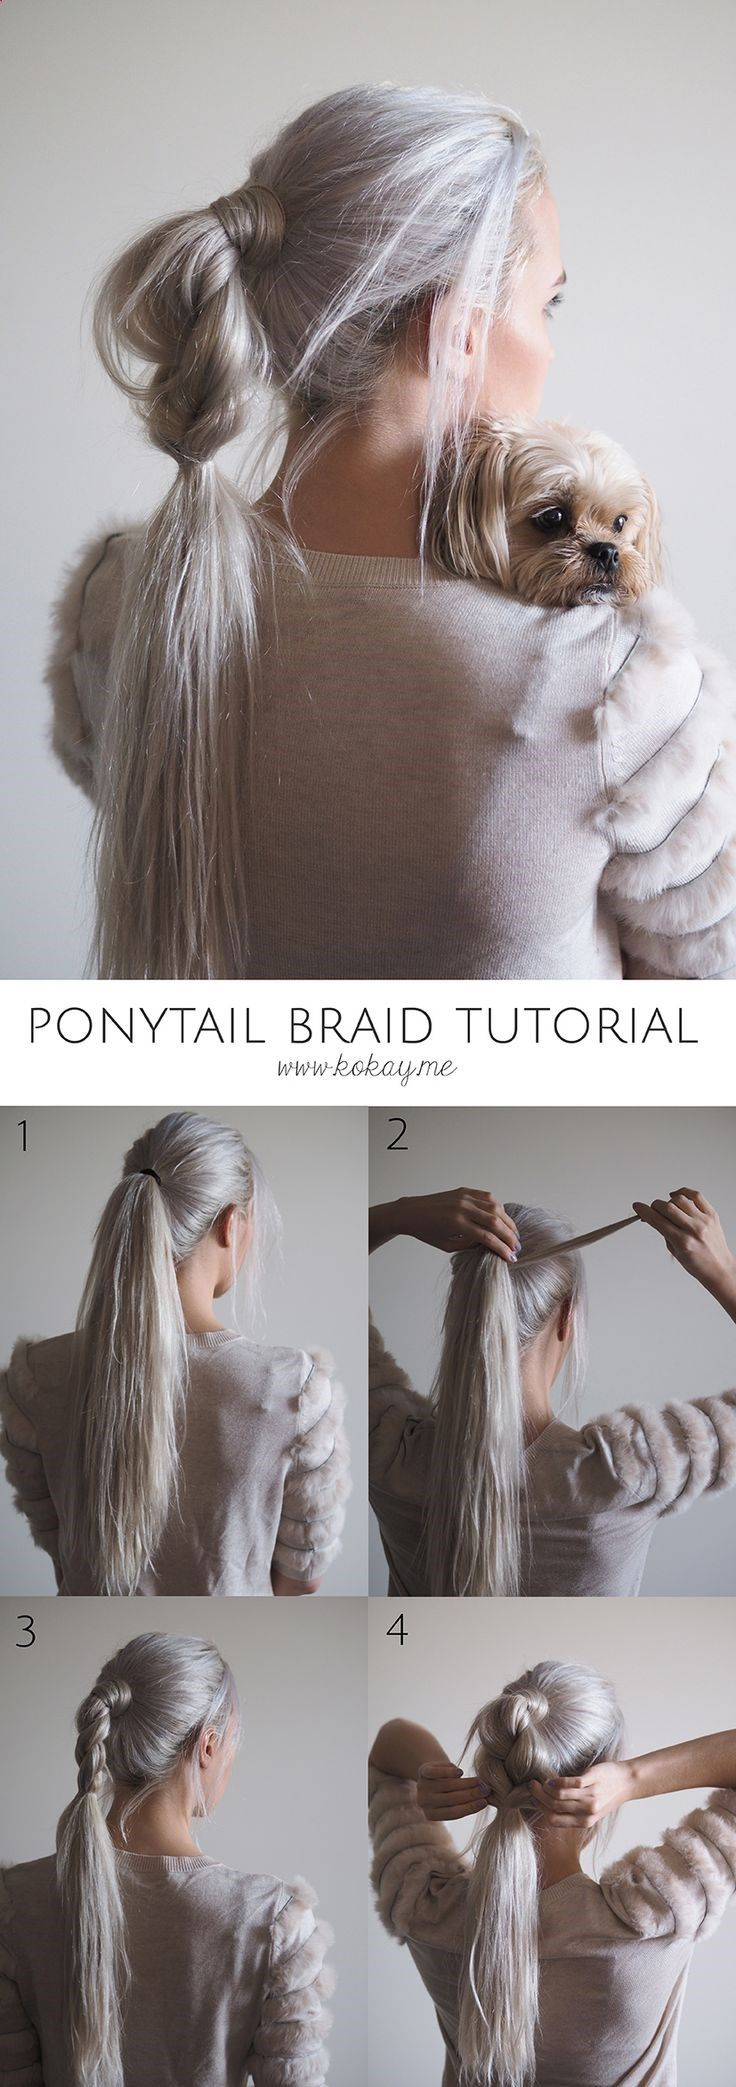 Hair Extensions - Half braided ponytail tutorial